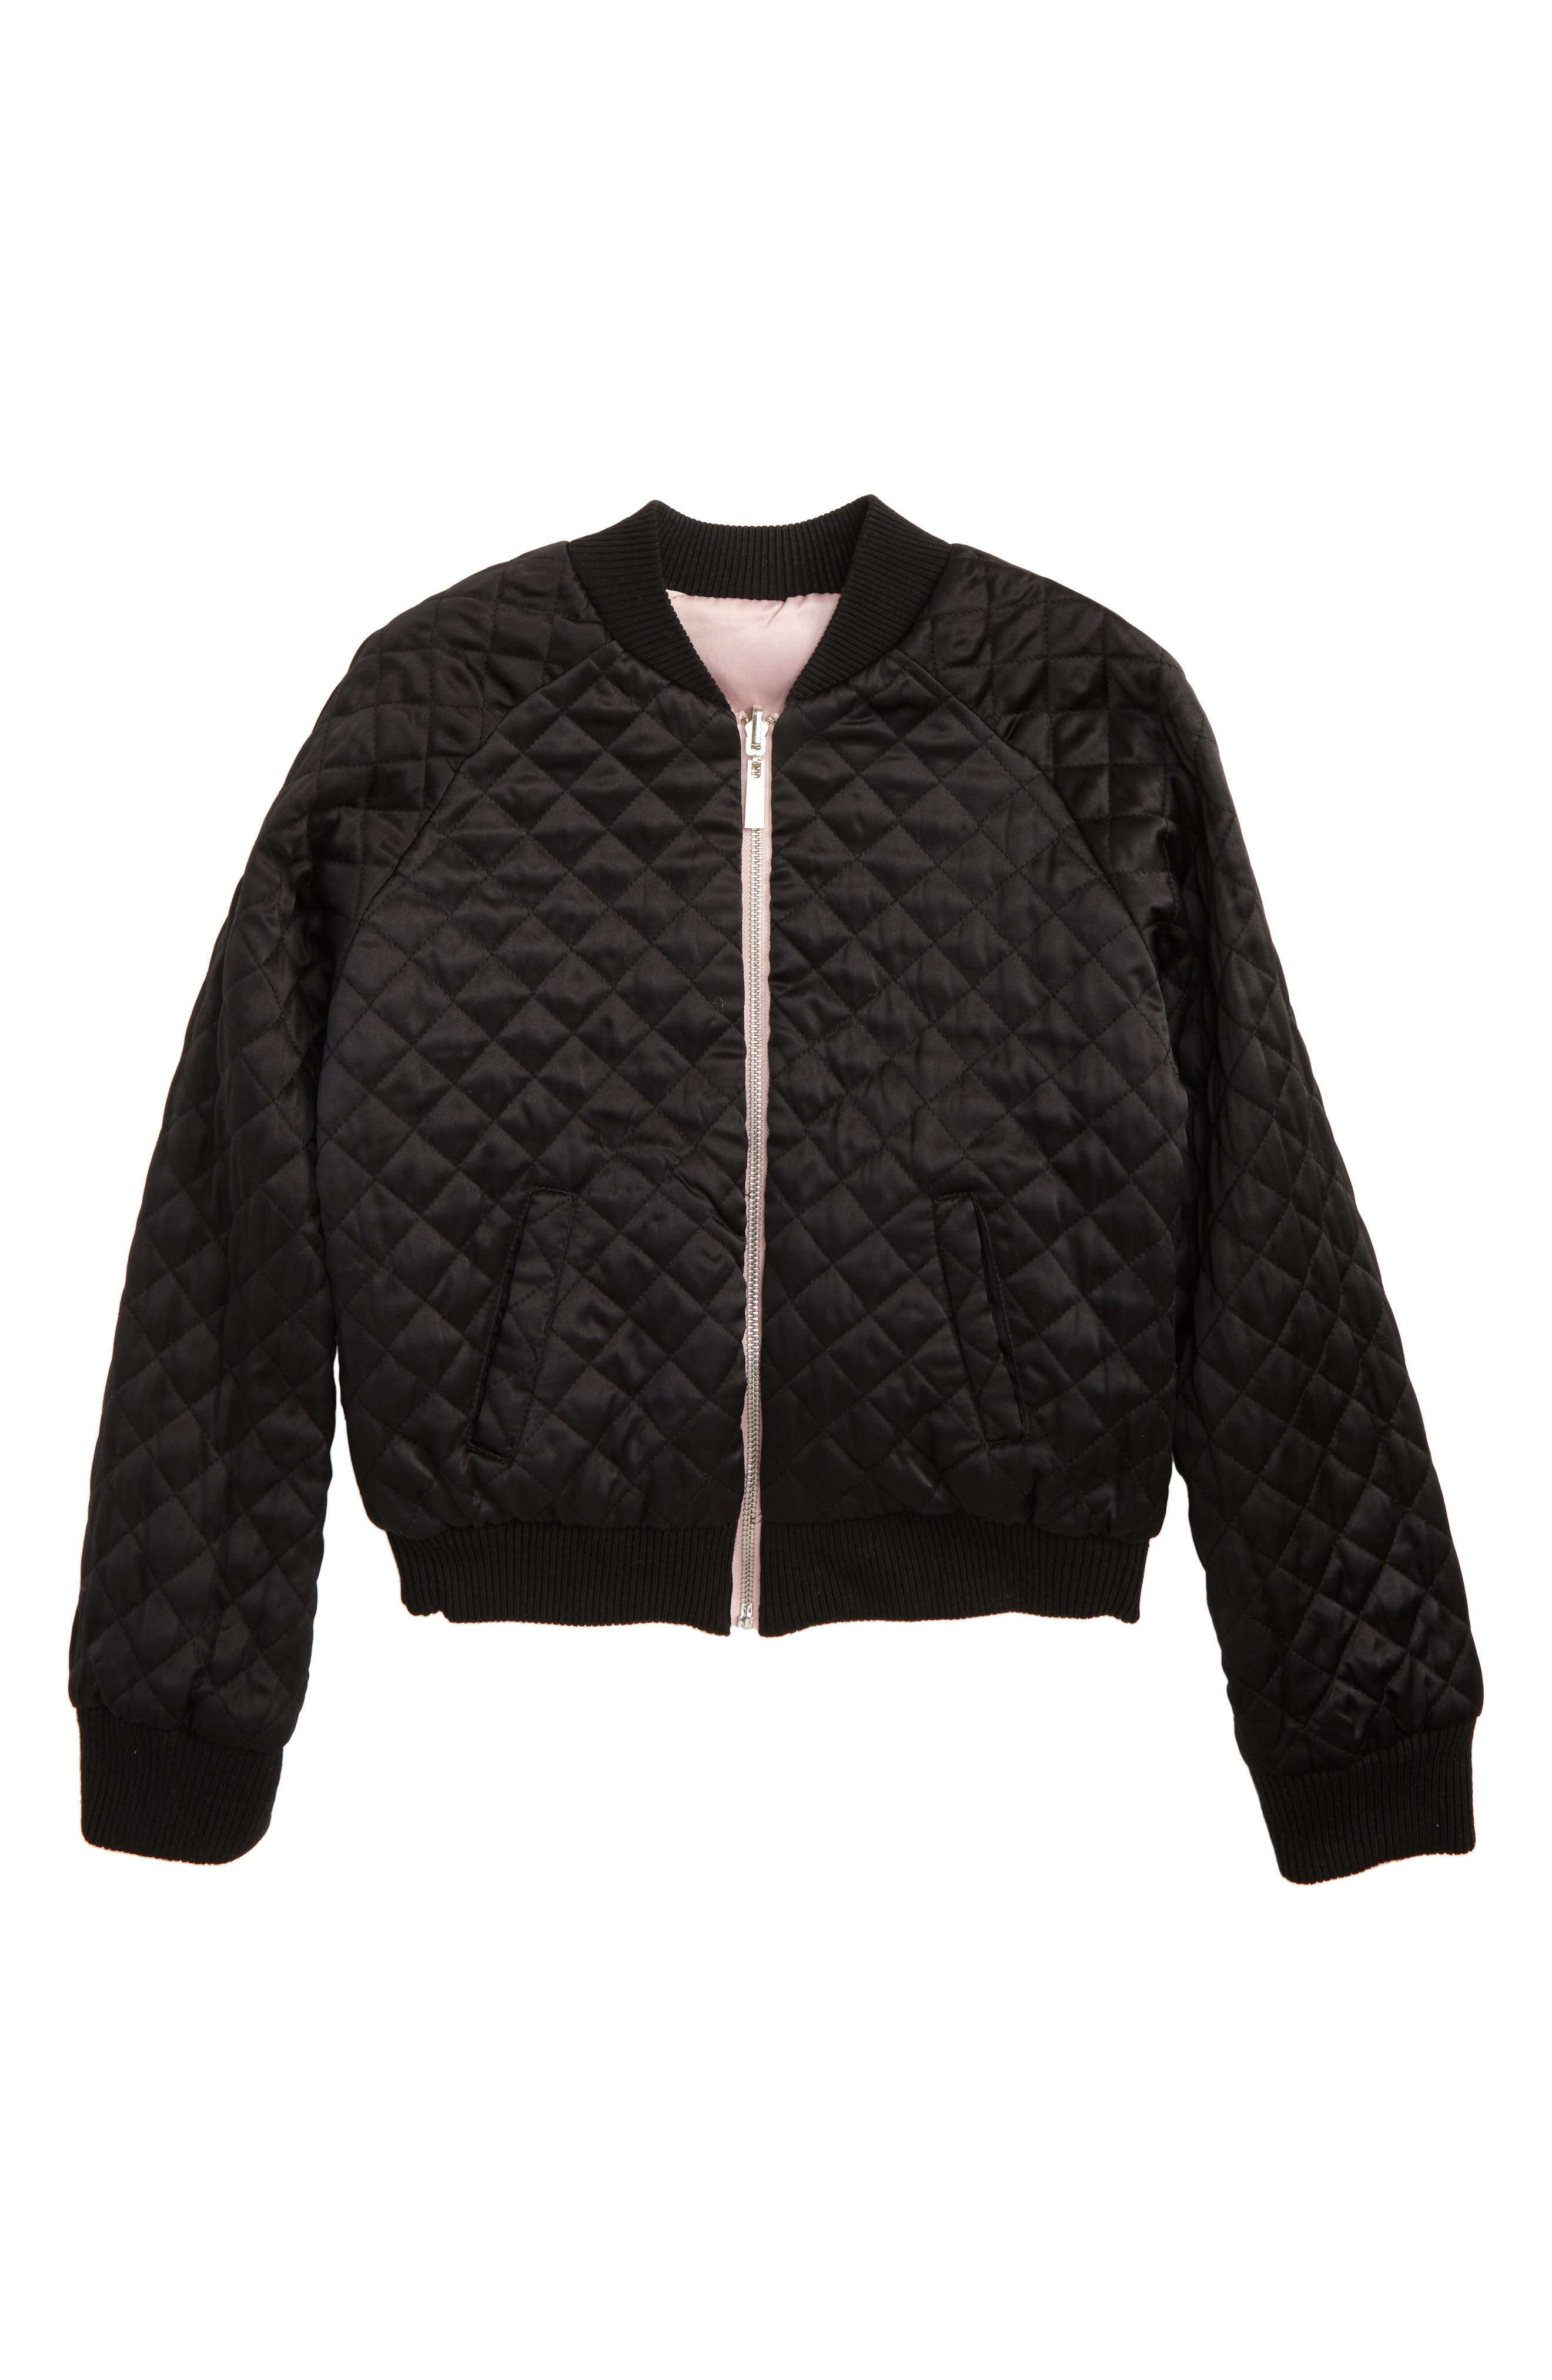 Embroidered Reversible Bomber Jacket,                             Alternate thumbnail 2, color,                             008